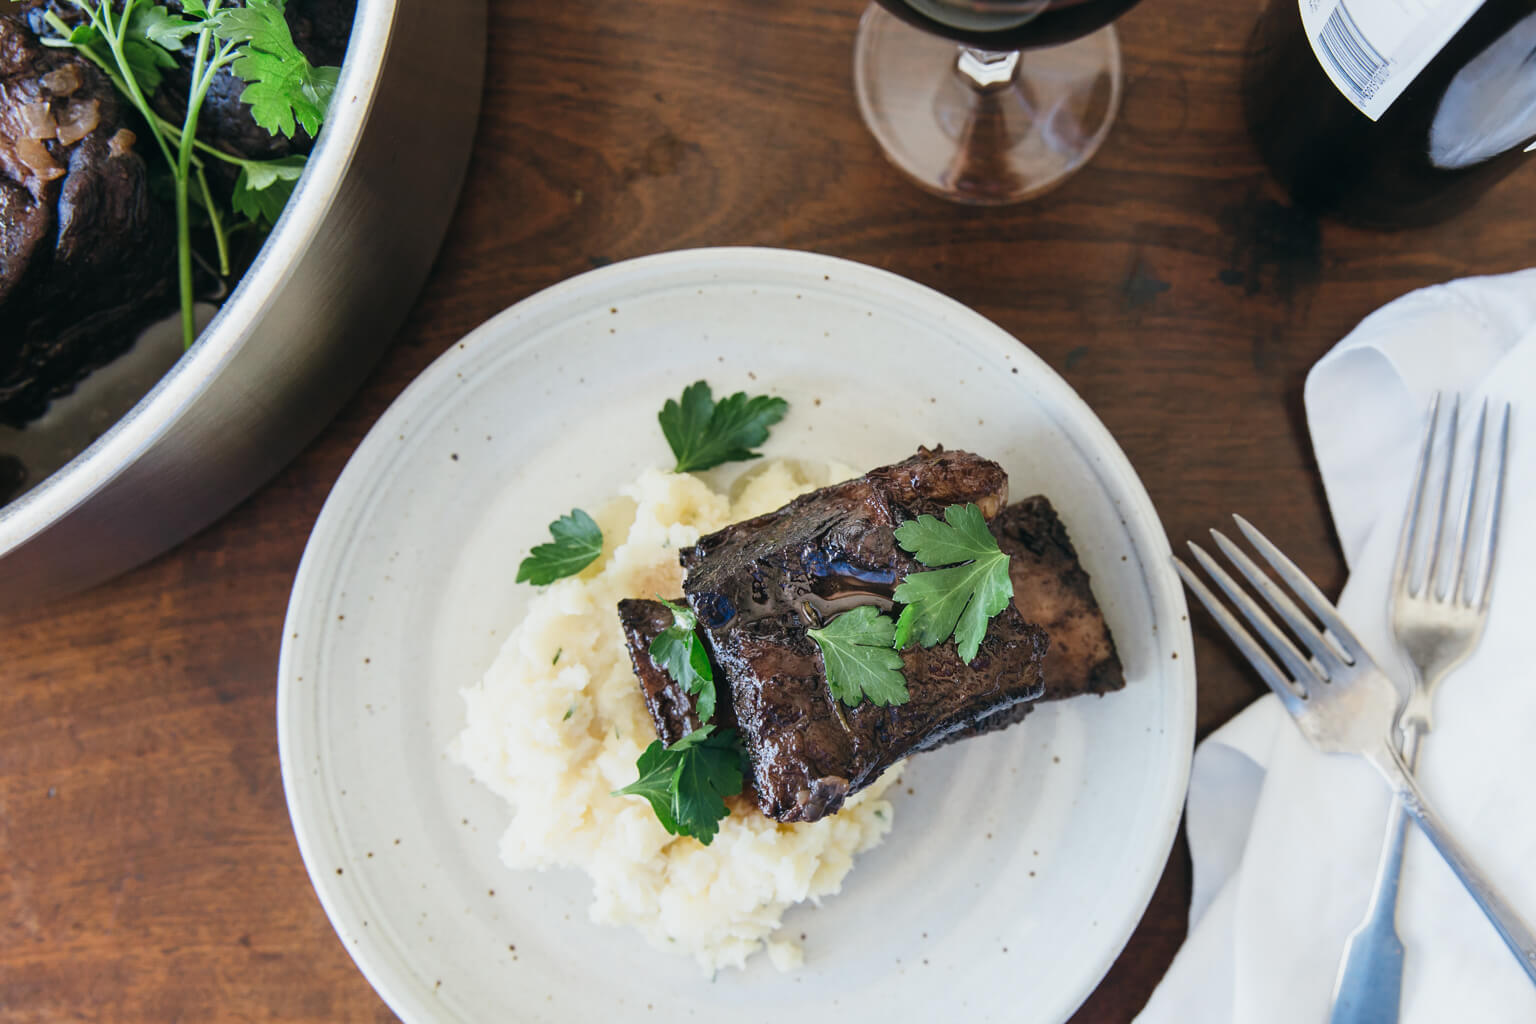 Cabernet-braised short ribs with rosemary root vegetable mash. Gluten-free and paleo.